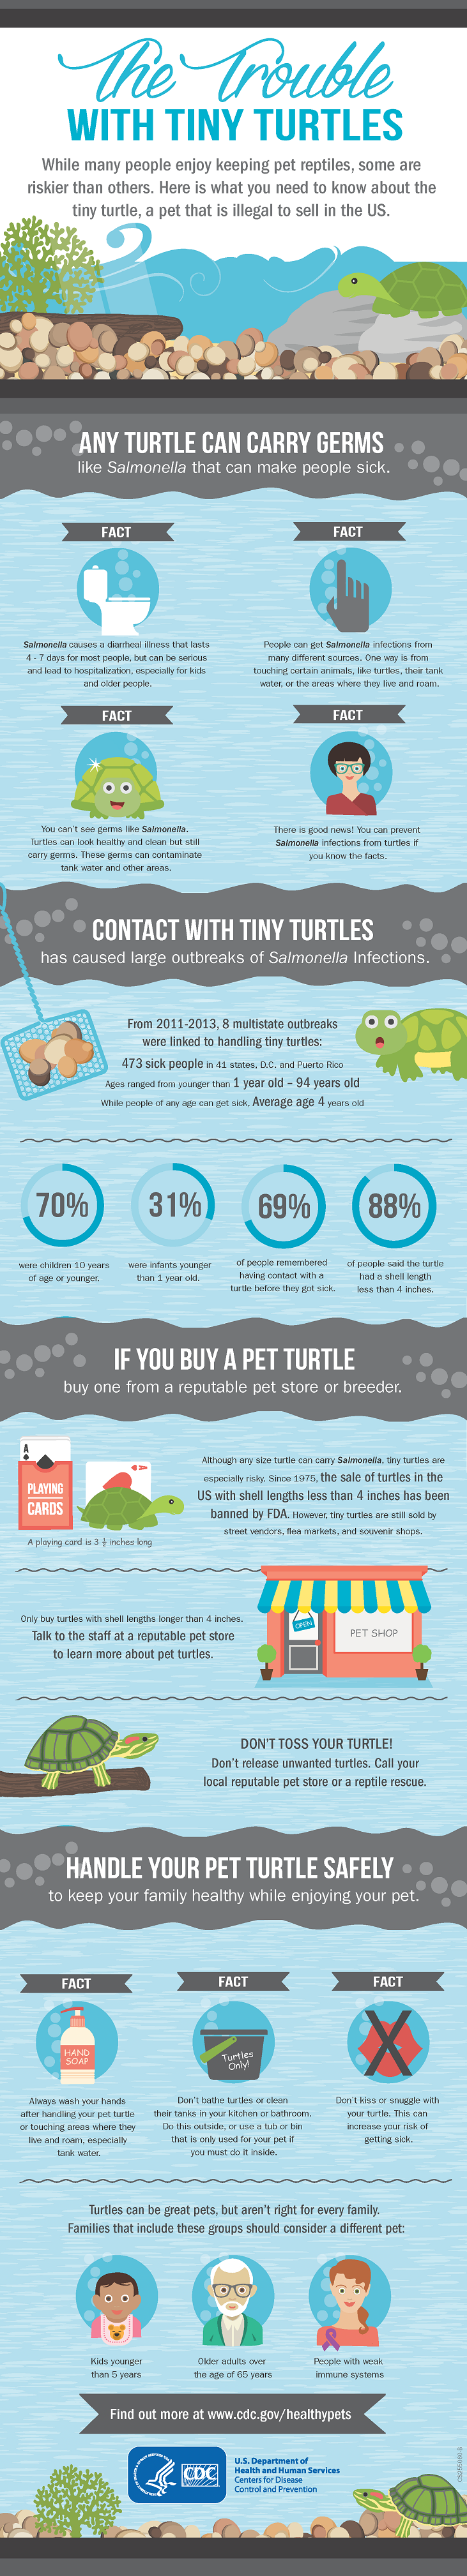 Credit: https://www.cdc.gov/healthypets/resources/trouble-with-tiny-turtles.pdf